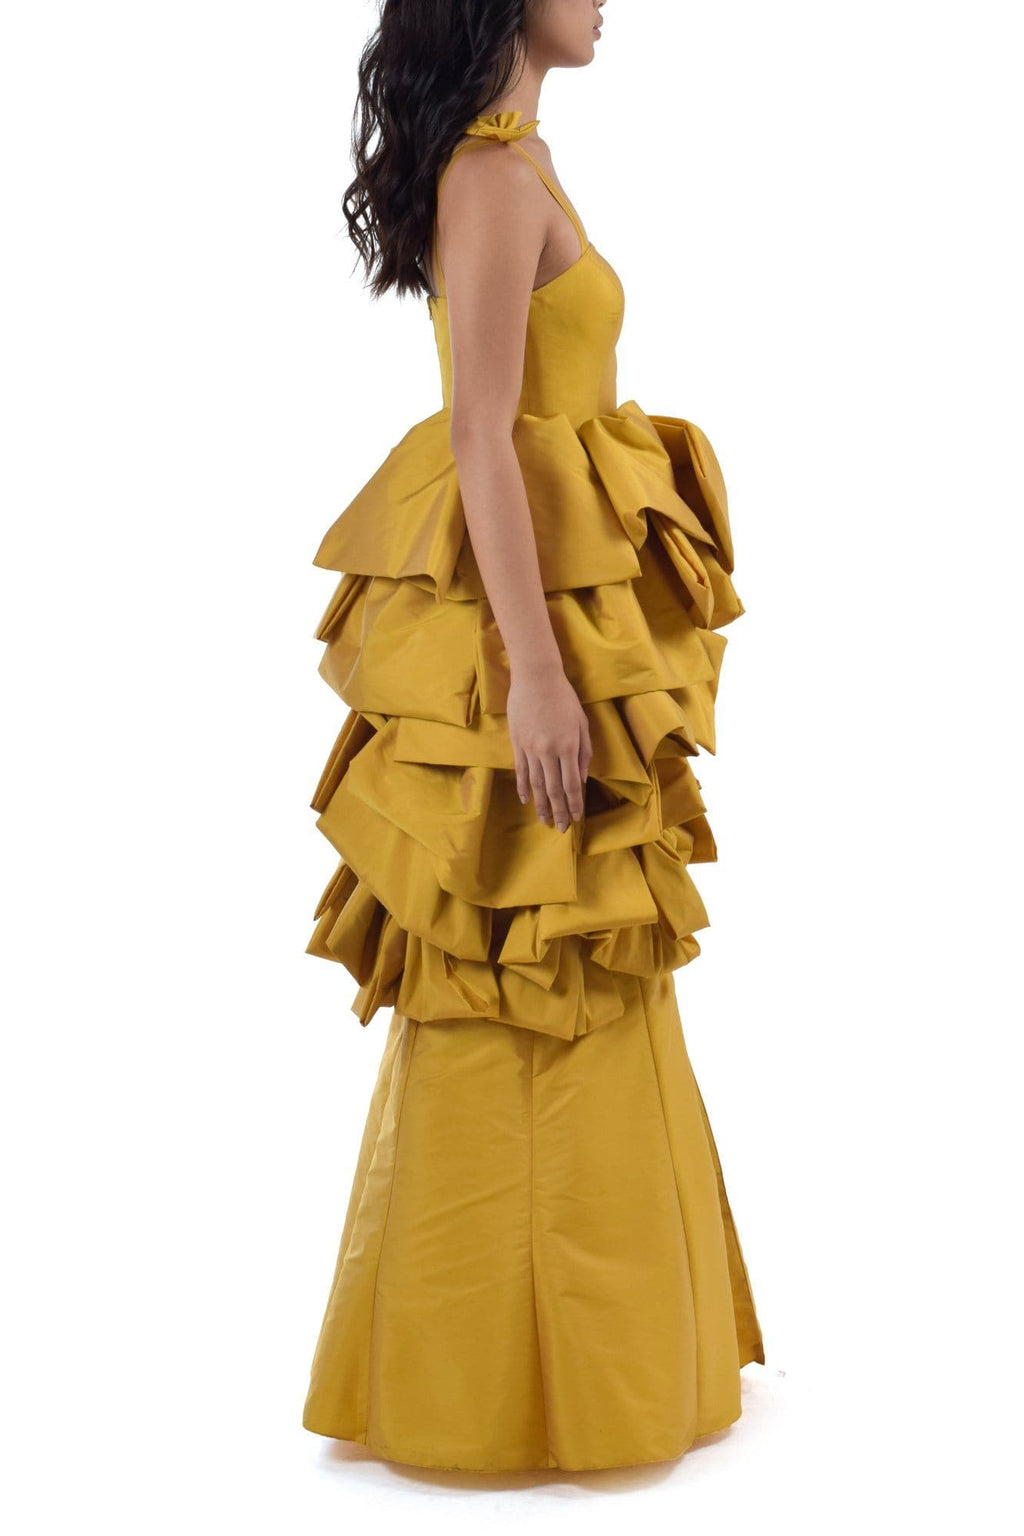 Cyber Mustard Bowed Midi Dress - BYTRIBUTE